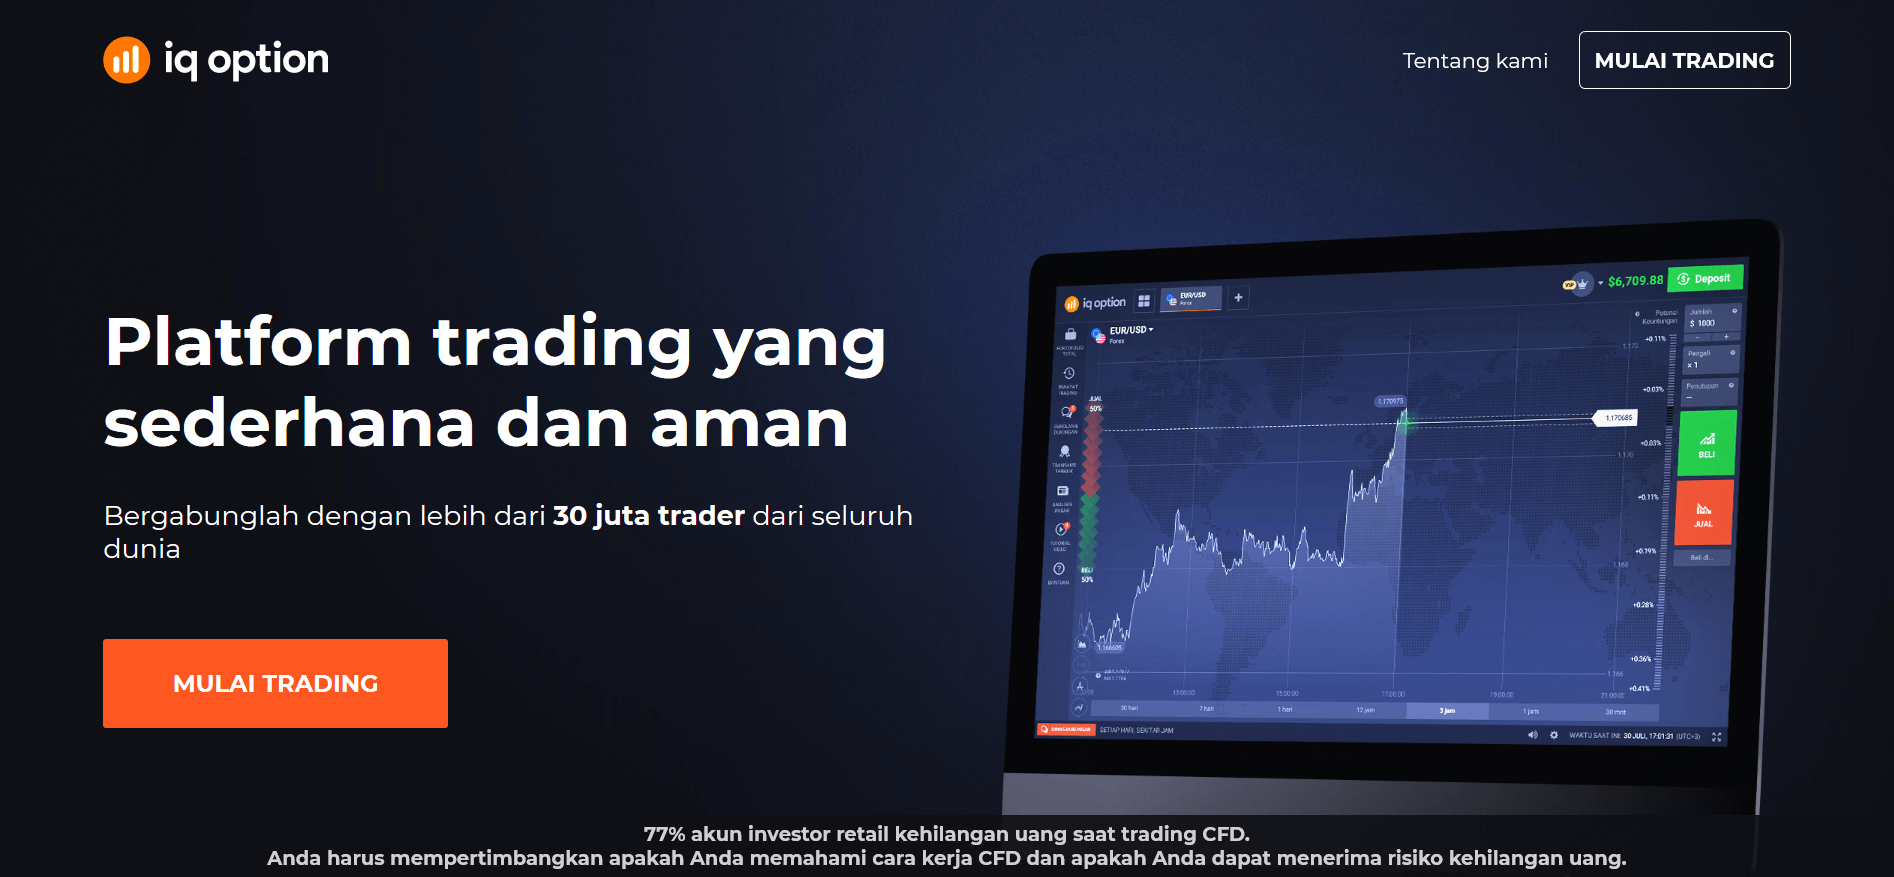 IQ option indonesia homepage